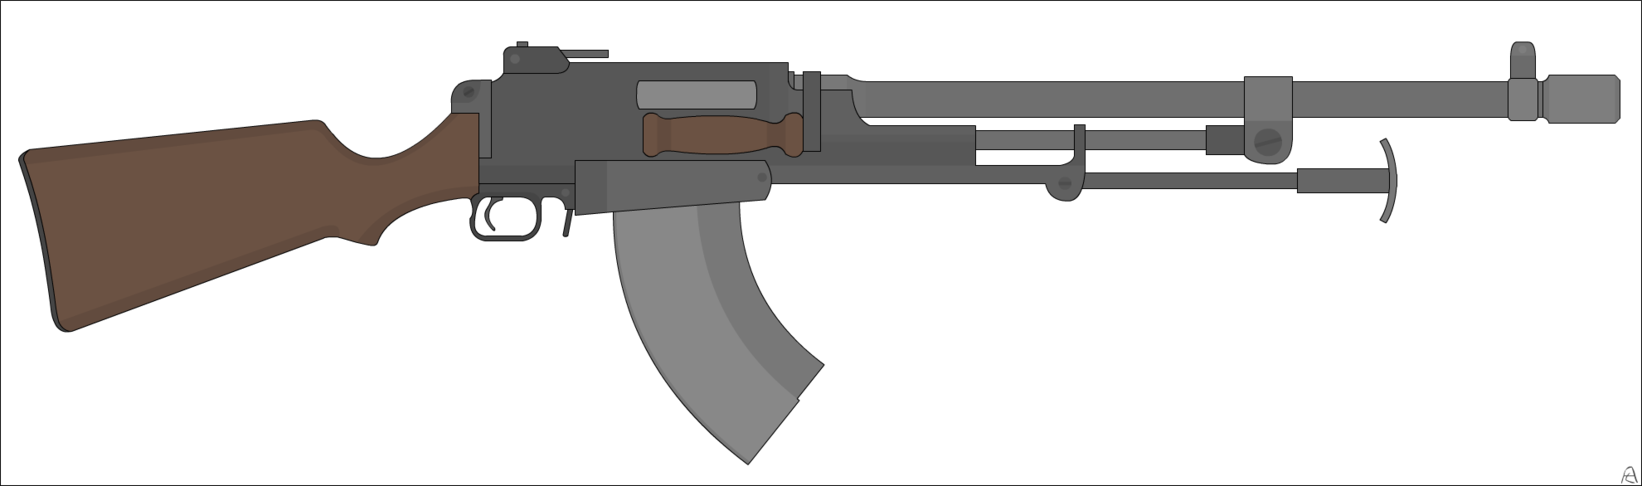 Browning automatic rifle png. Fordorsia model by airborneleaf